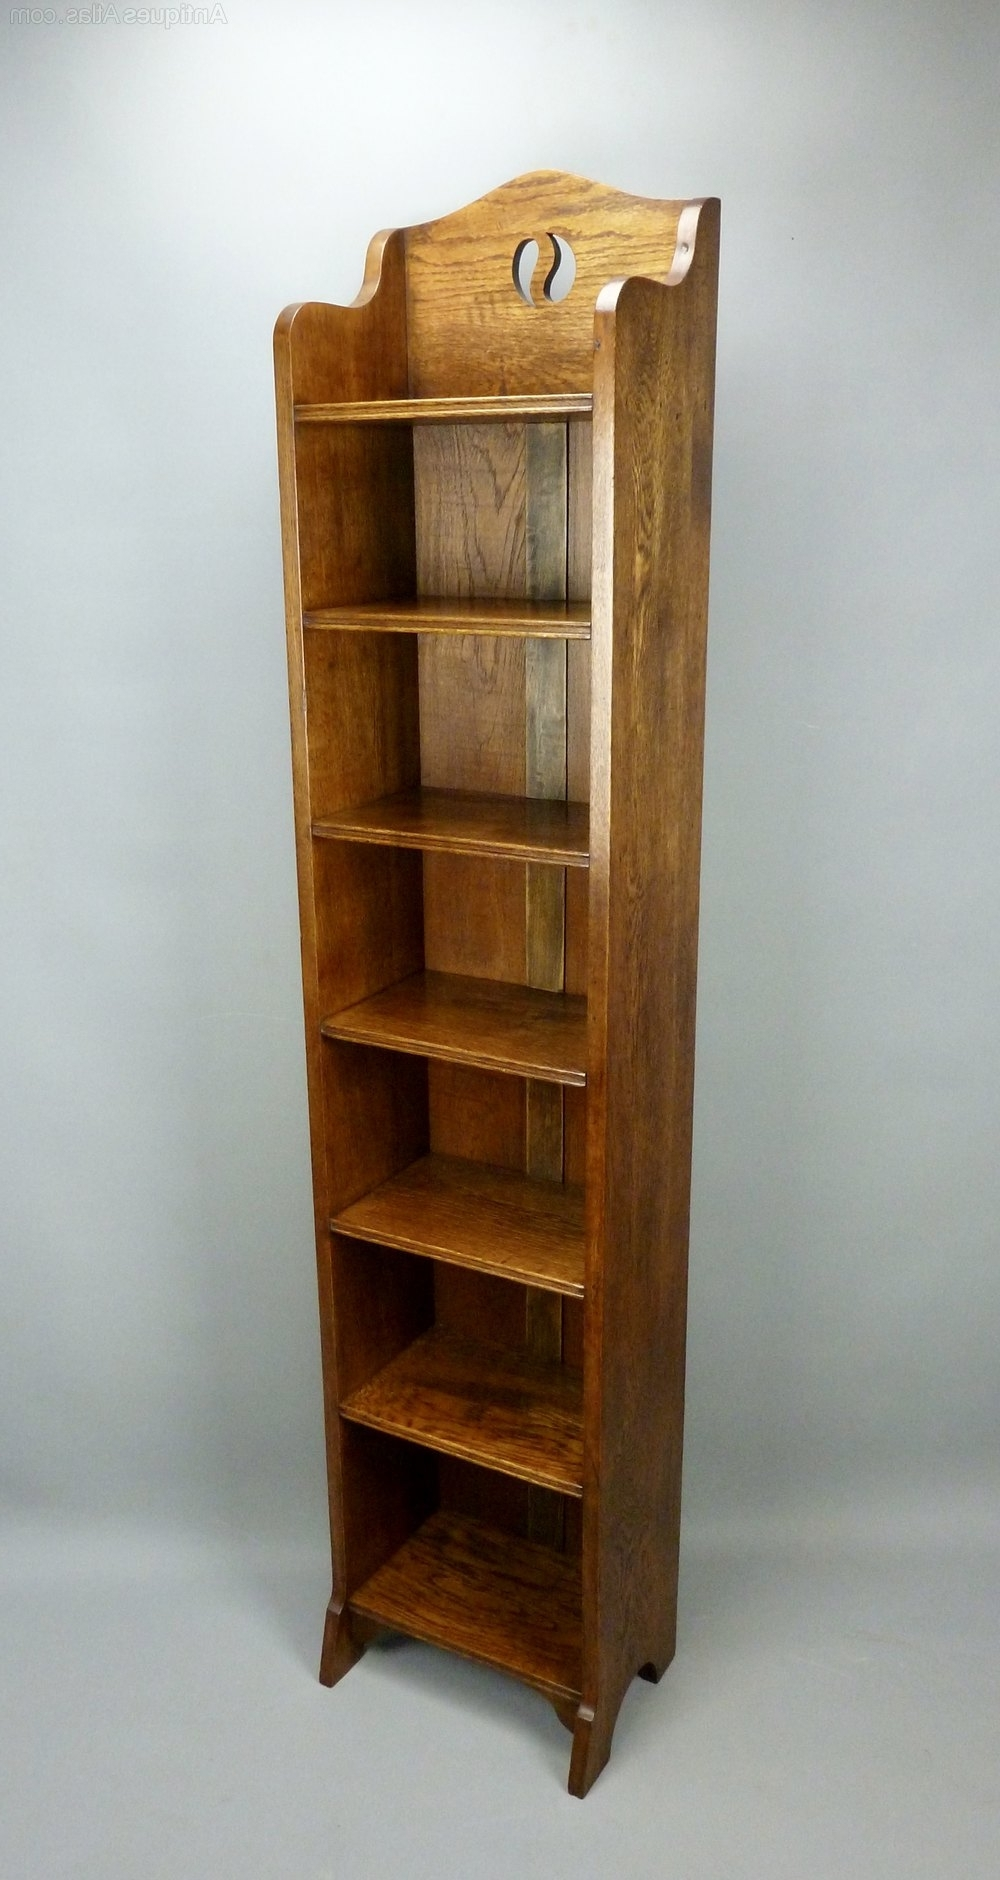 Very Tall Bookcases In Widely Used Very Tall Bookcases Furniture White Corner Distressed Bookcase (Gallery 10 of 15)